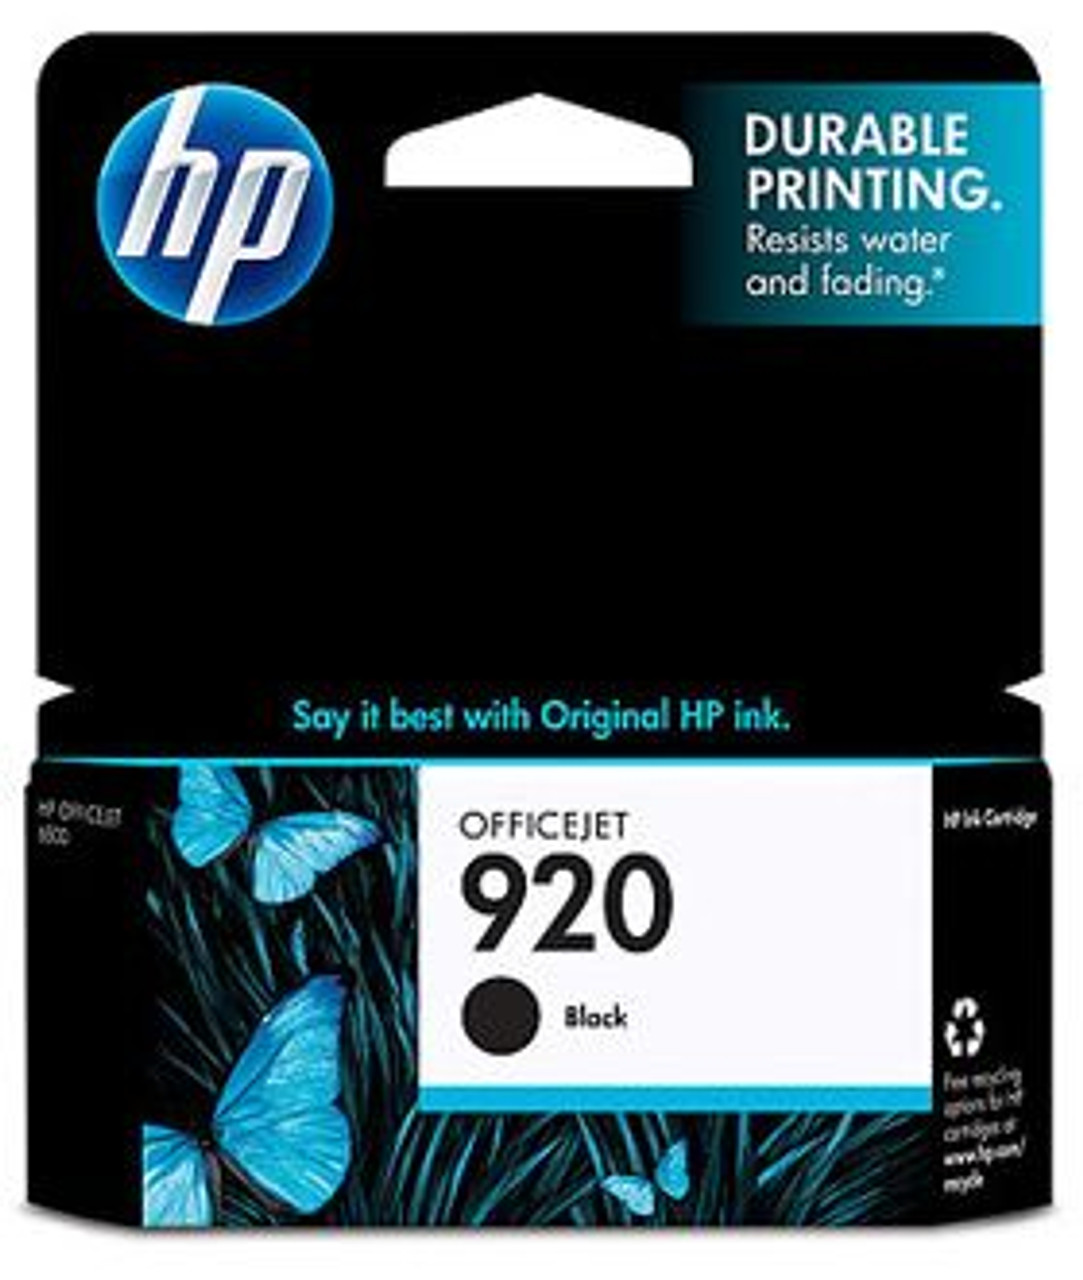 Image for HP 920 Black Officejet Ink Cartridge, 420 pages (CD971AA) CX Computer Superstore